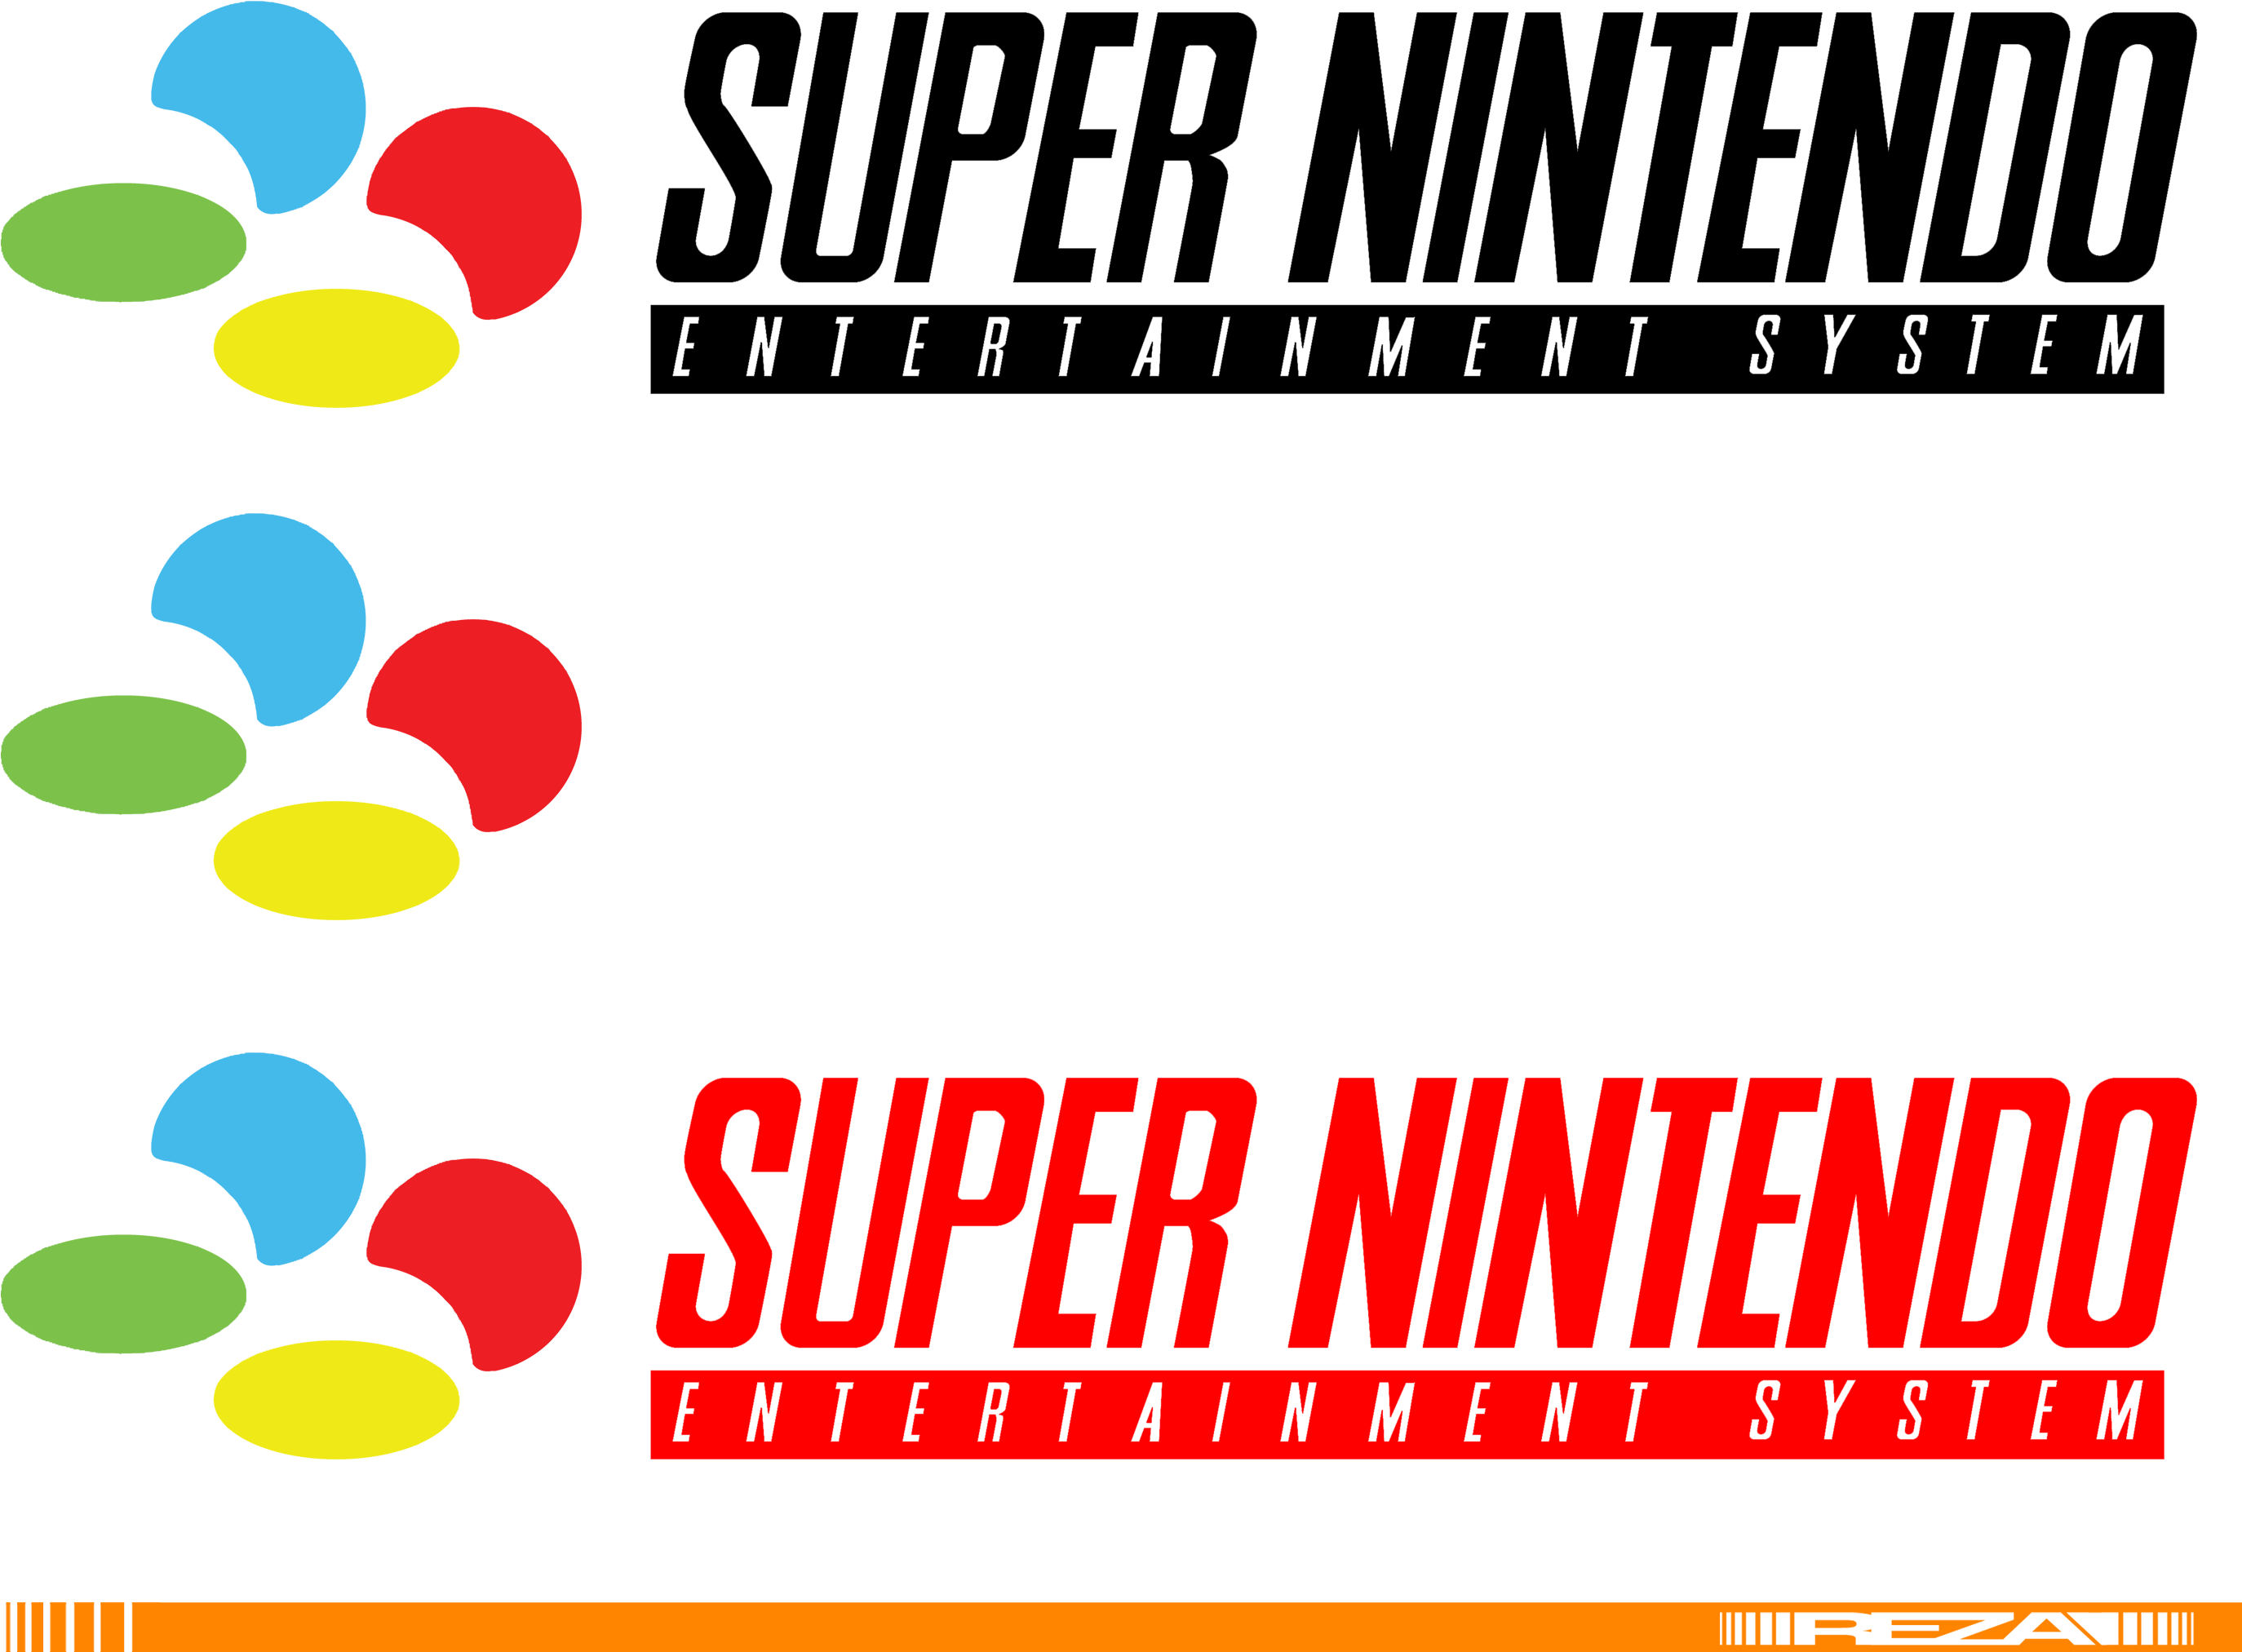 Nintendo entertainment system logo png. Download hd snes color